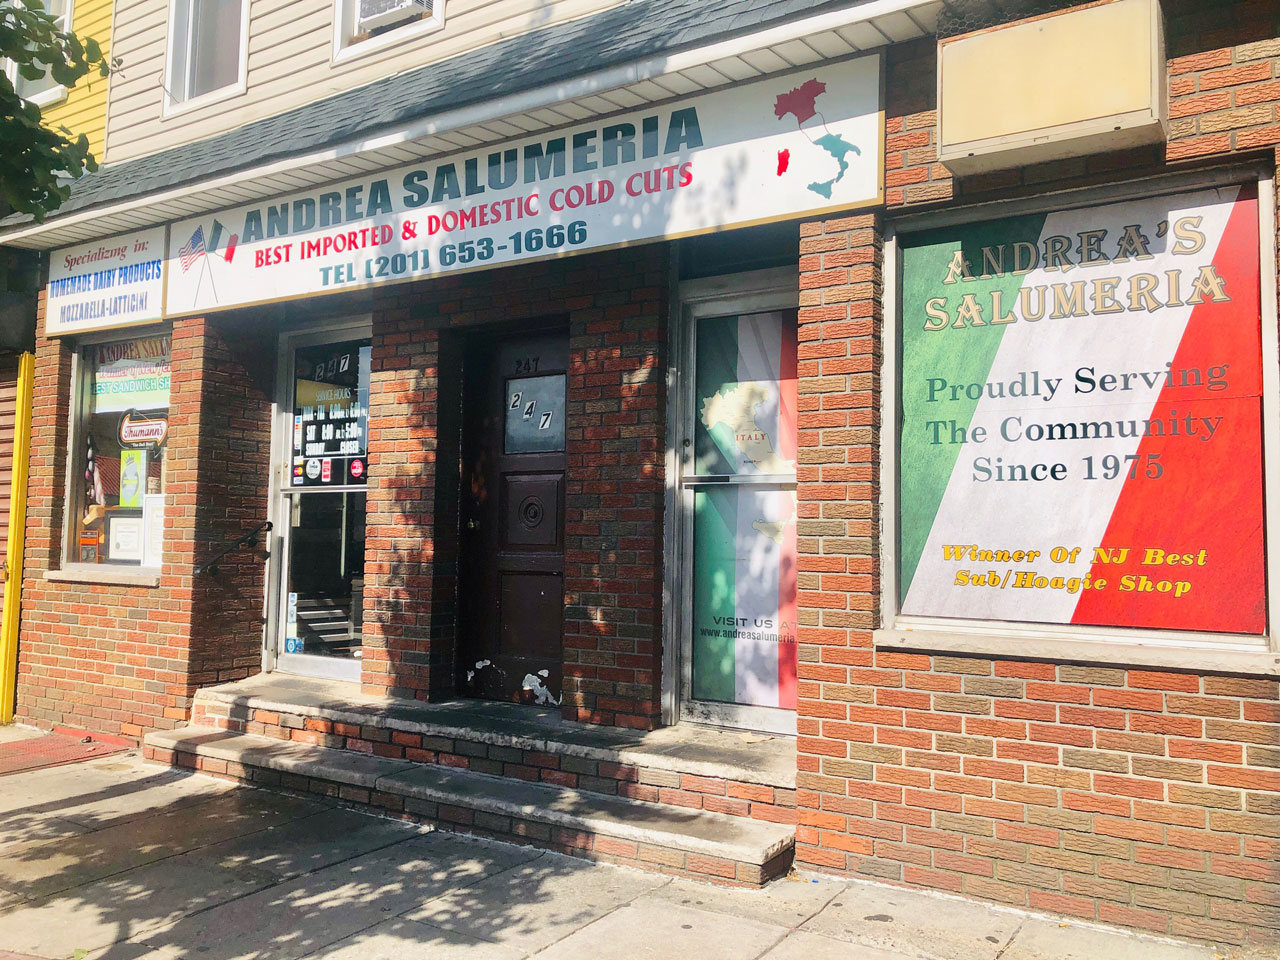 Andrea Salumeria 247 Central Avenue Jersey City Heights 1